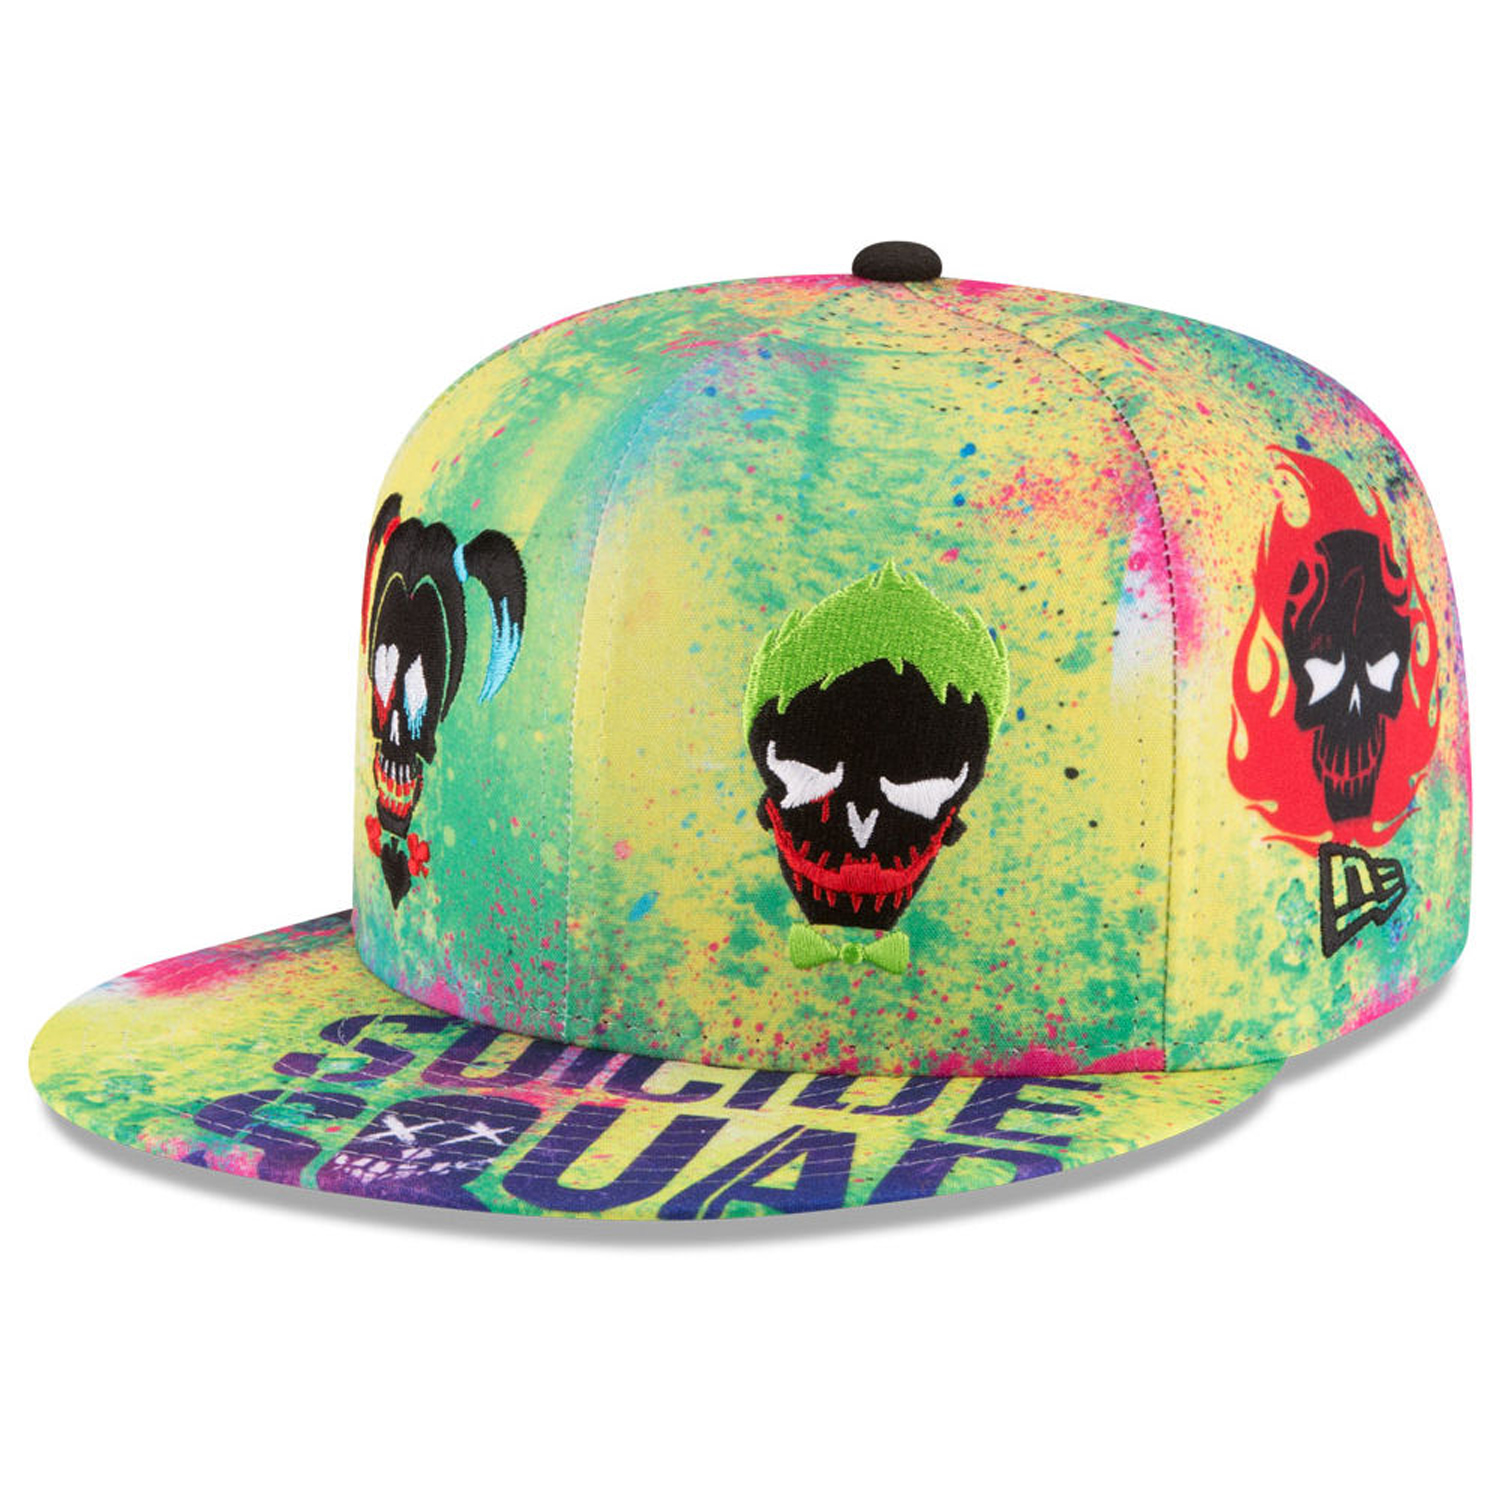 Details about New Era DC Comics Suicide Squad All Over Skulls 59Fifty Fitted  Cap Hat 029a20fe172